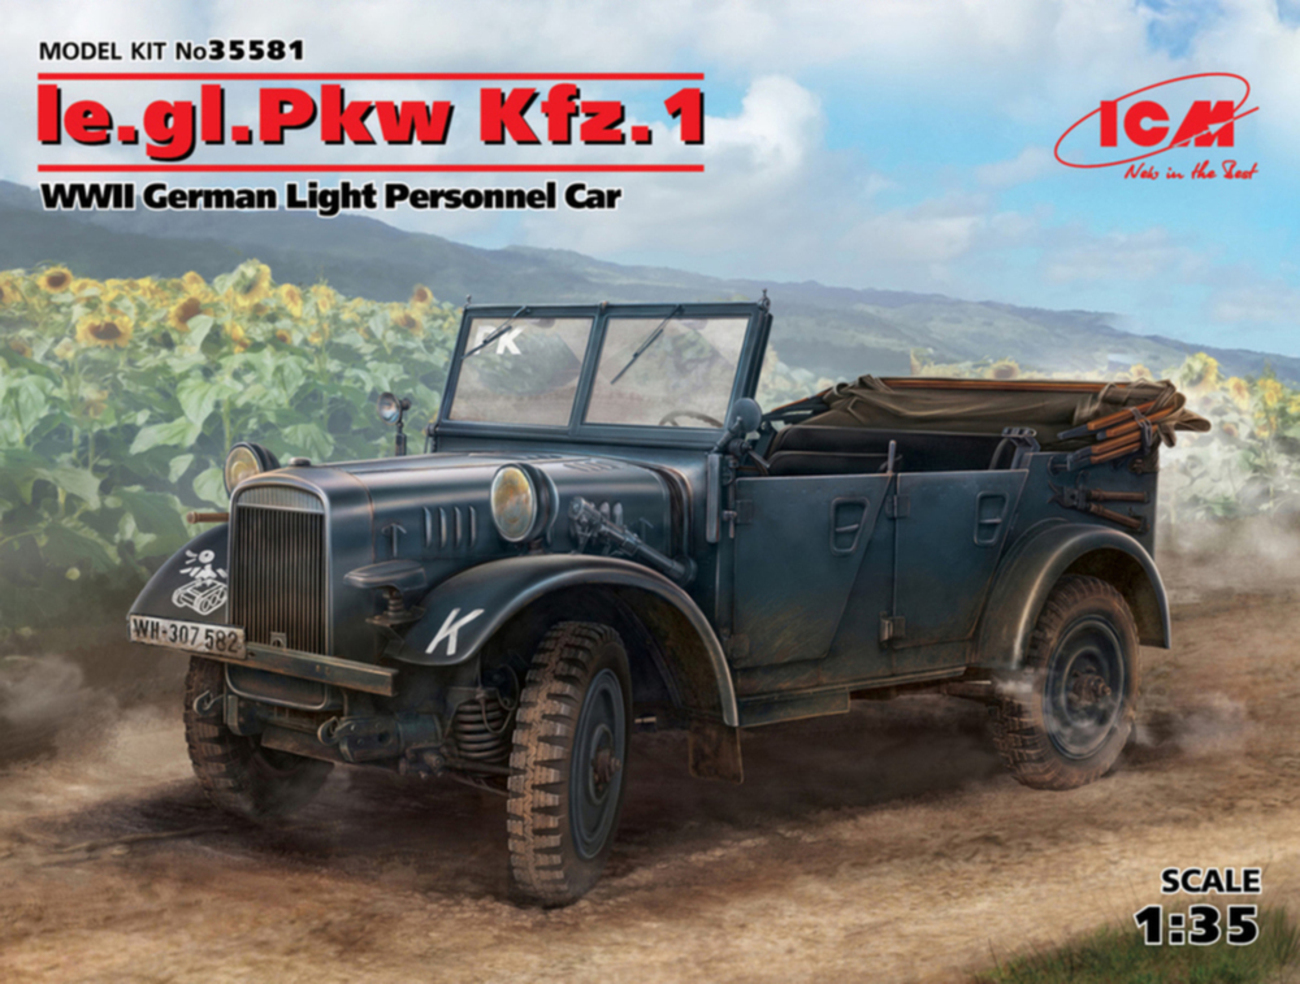 ICM 1\35 le.gl.Einheits-Pkw Kfz.1, WWII German Light Personnel Car (100% new molds) # 35581